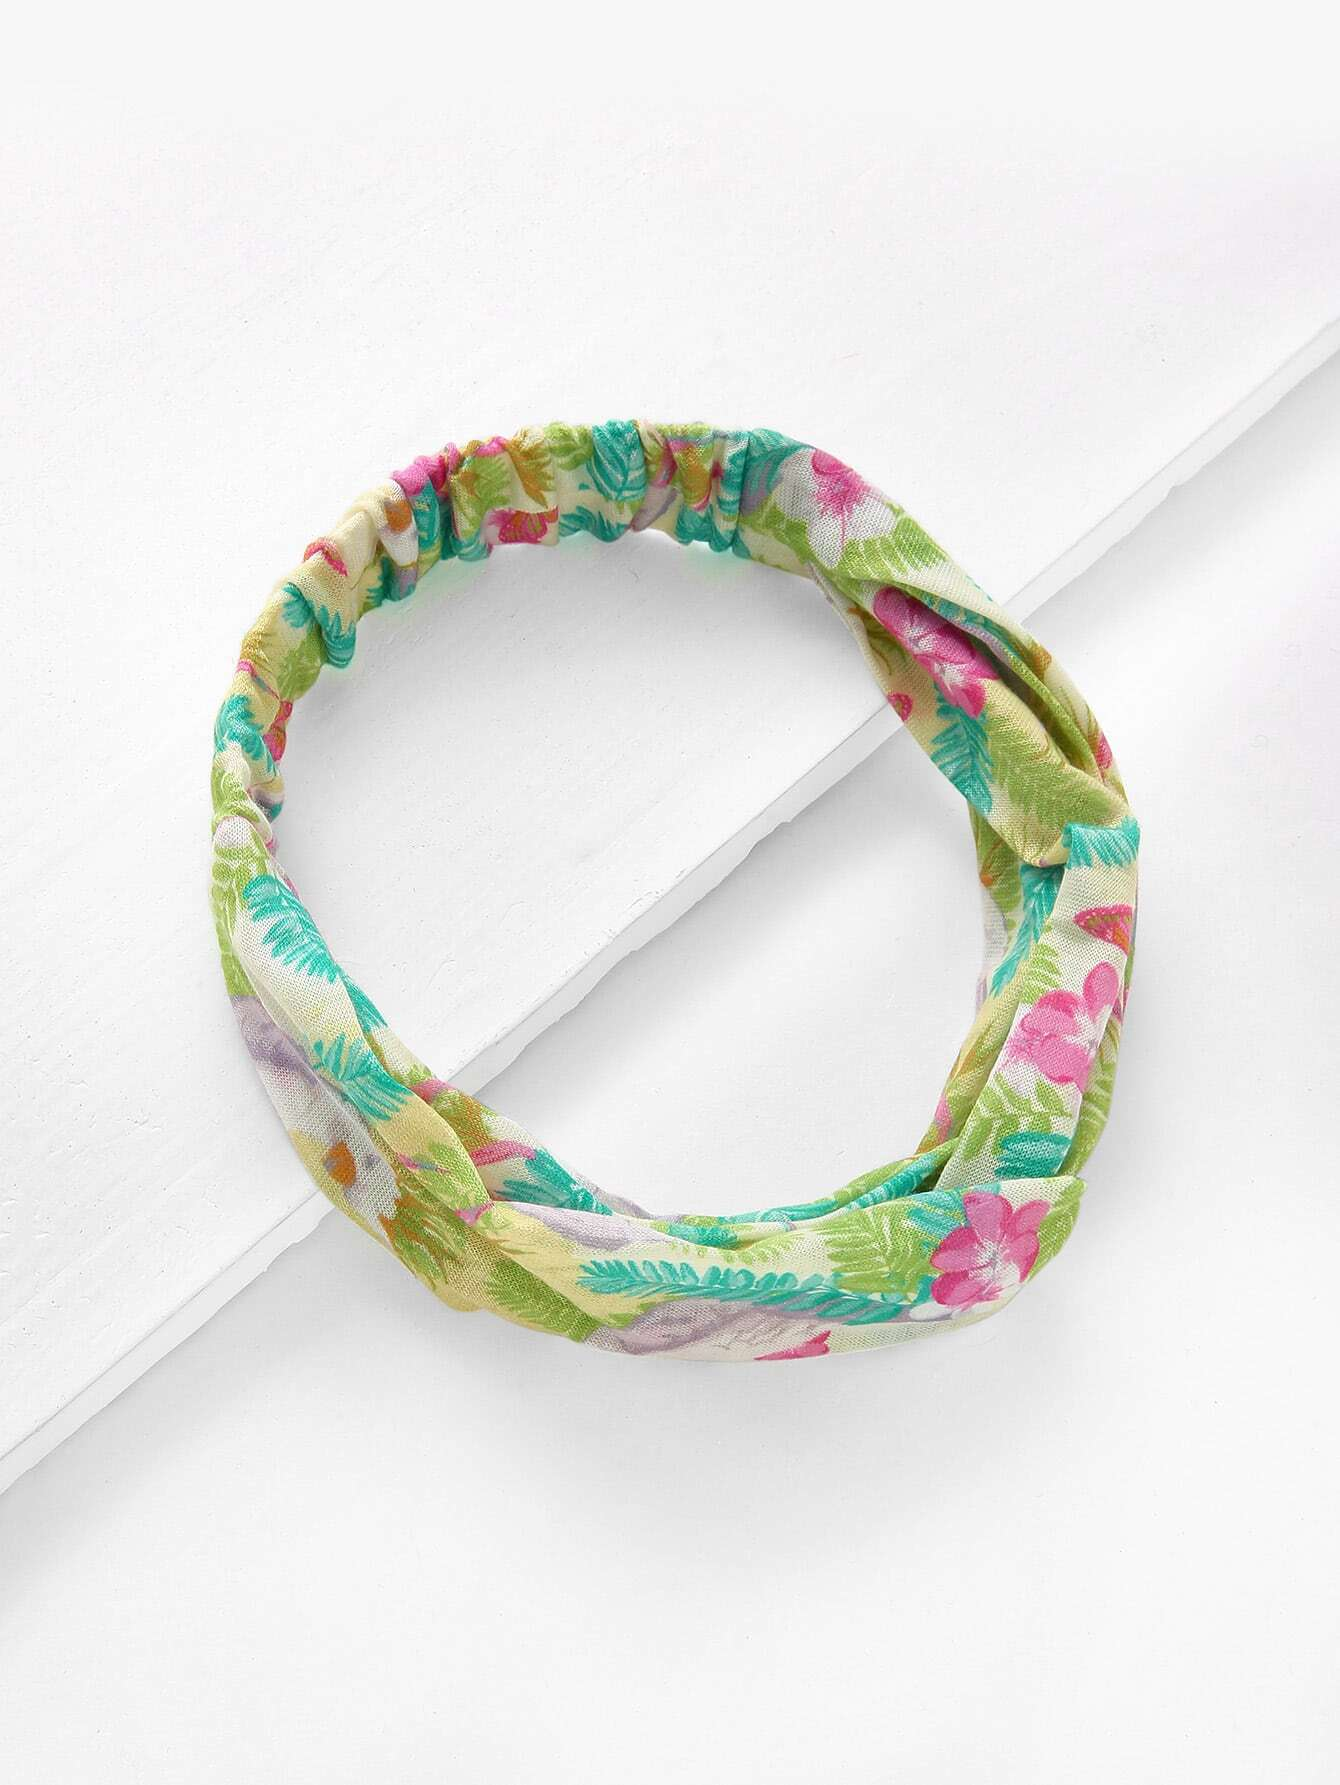 Calico Print Twist Headband